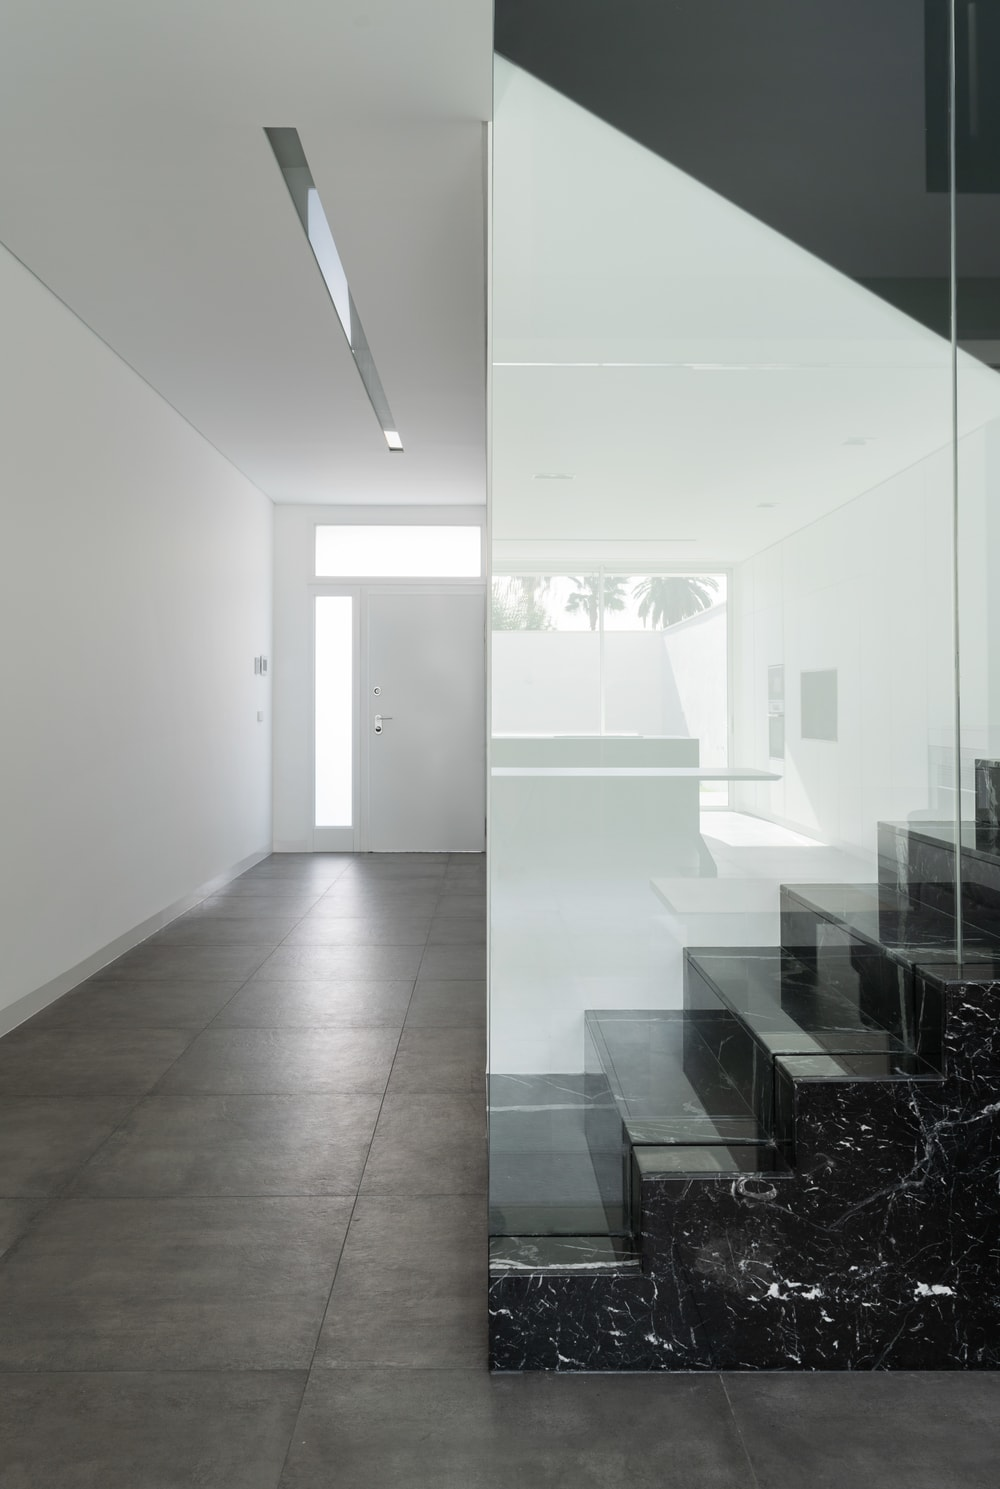 Upon entry of the house, you are welcomed by this simple foyer with white walls and ceiling complemented by gray flooring tiles.